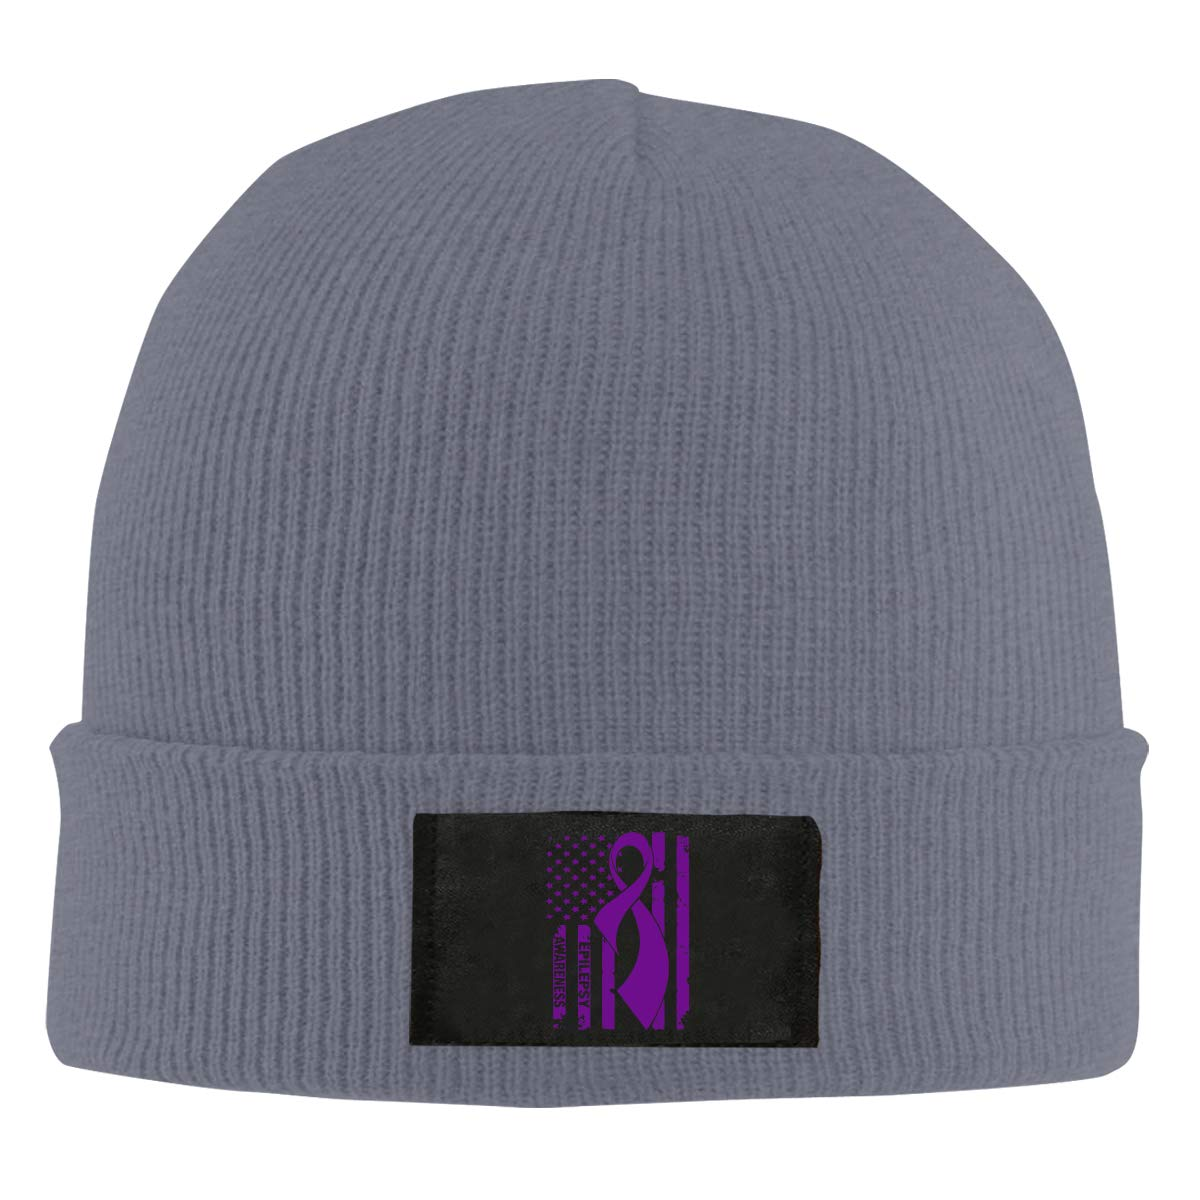 Epilepsy Awareness Flag Unisex Warm Winter Hat Knit Beanie Skull Cap Cuff Beanie Hat Winter Hats